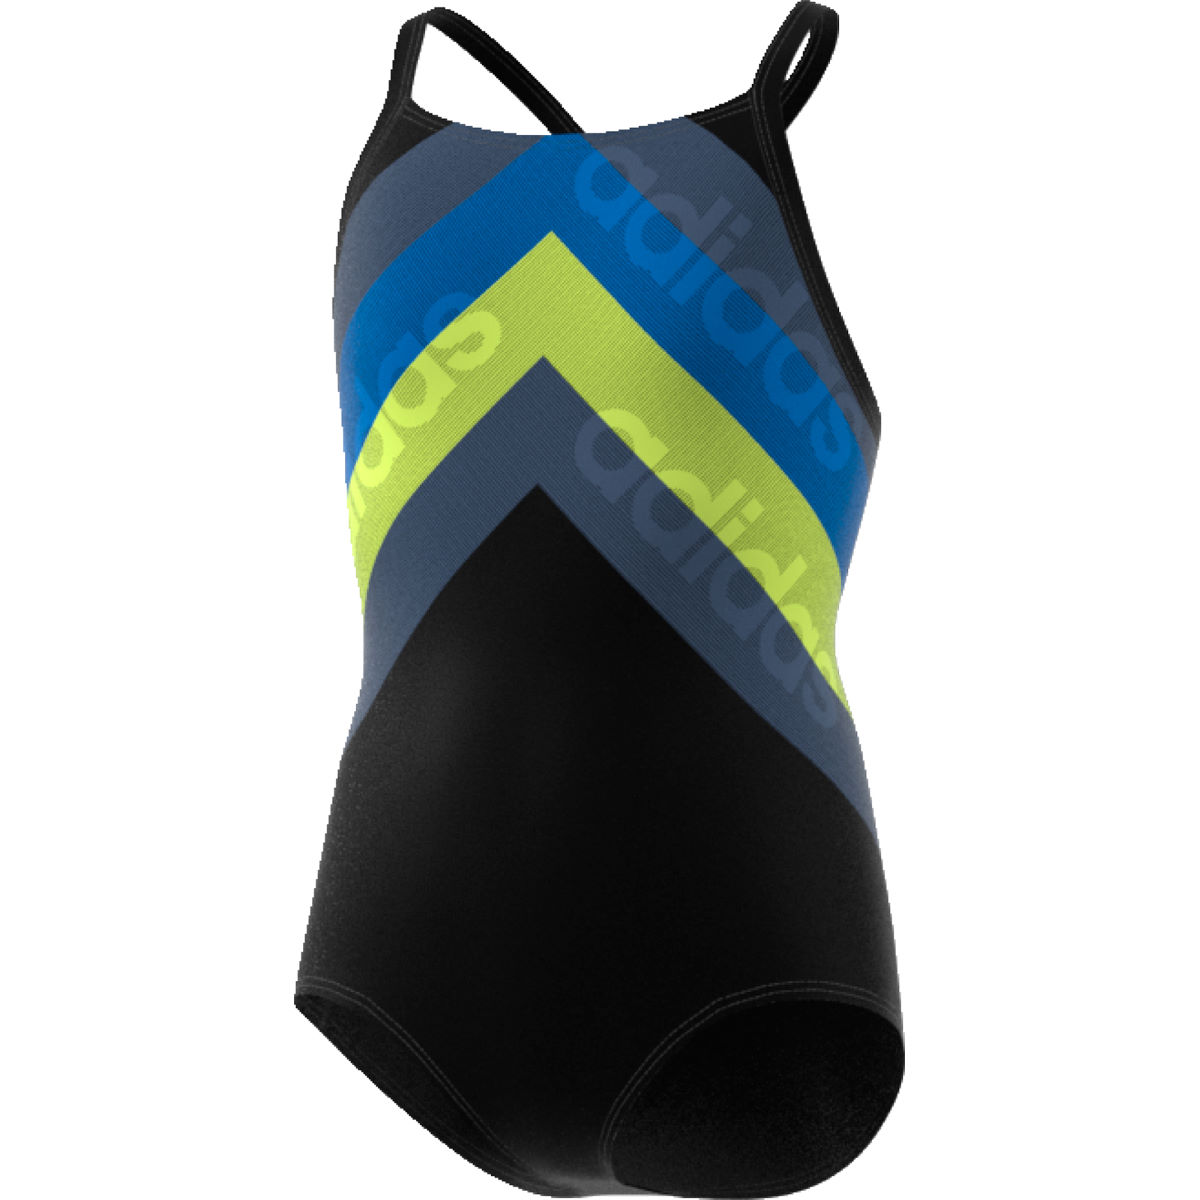 Maillot de bain Fille adidas Training Lineage Takedown - 13-14 Years